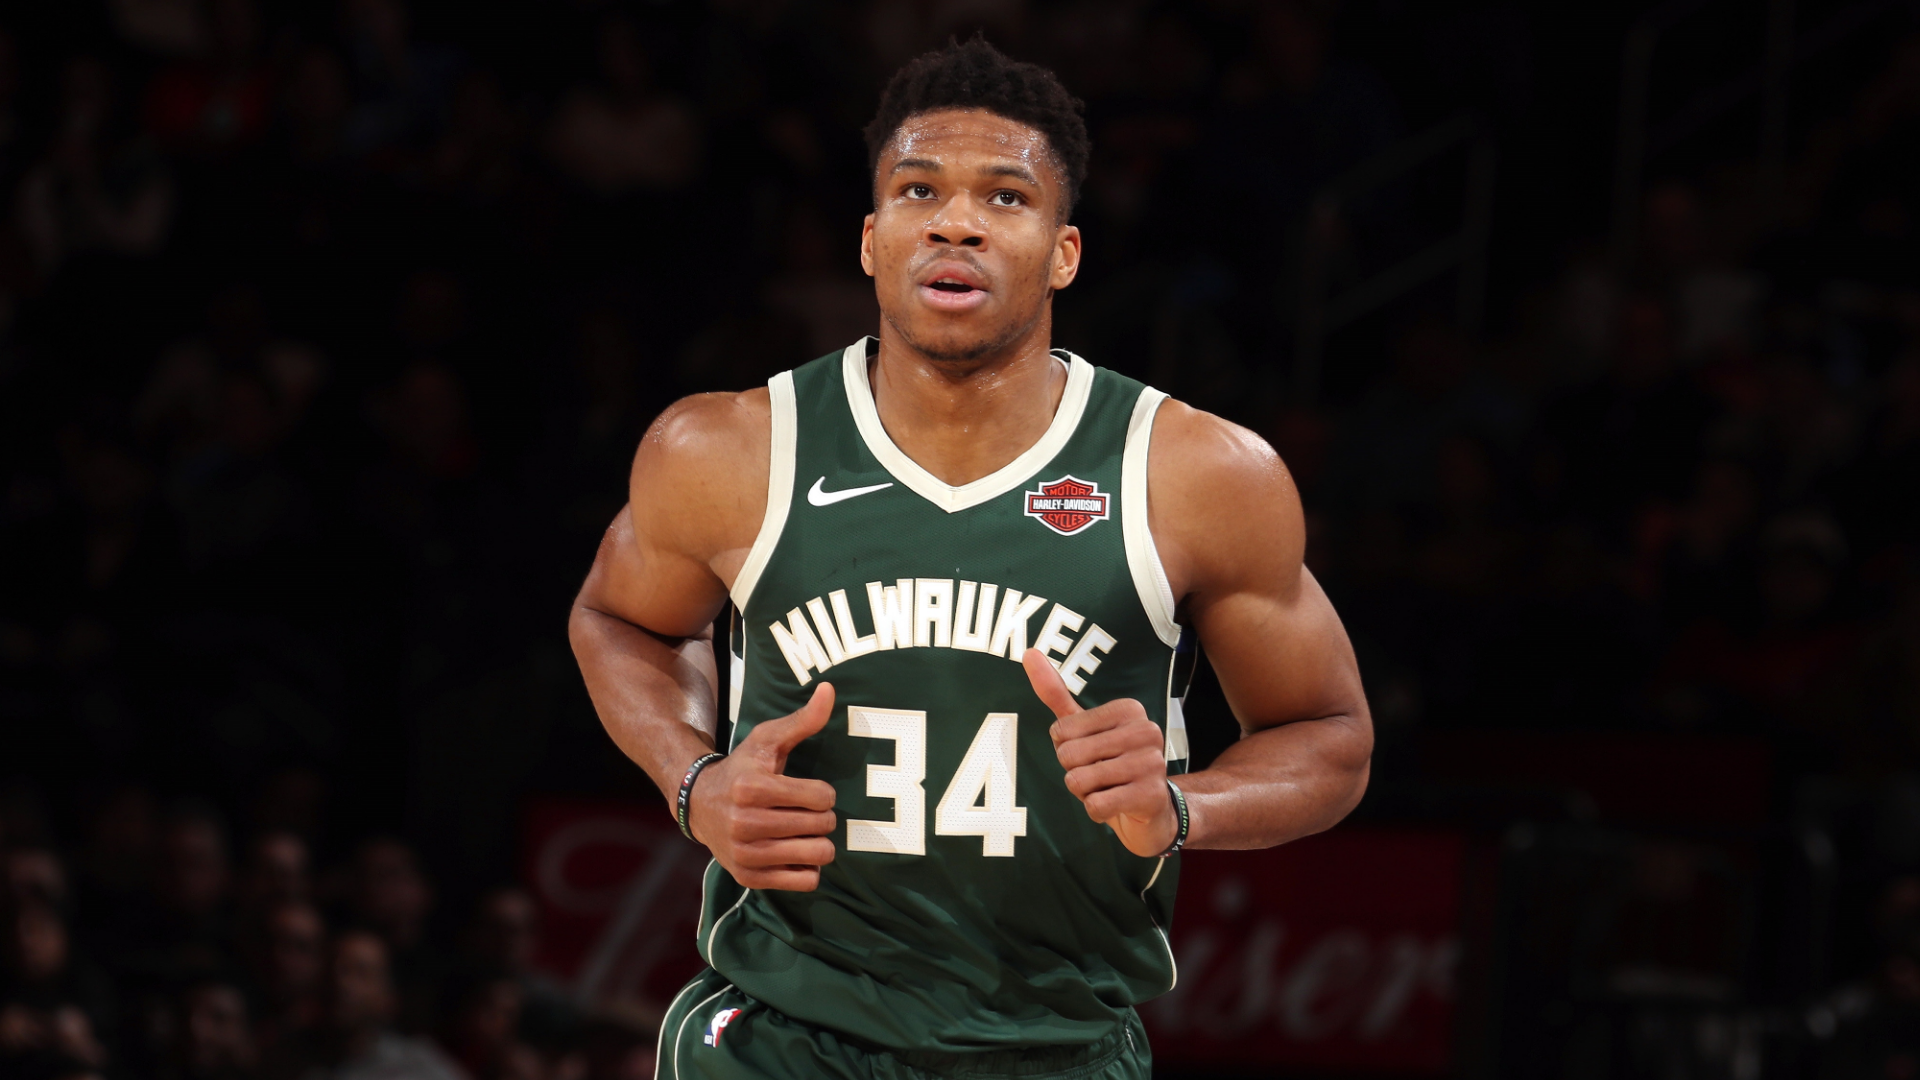 NBA Trade Buzz: Golden State Warriors Have Good Chance to Acquire Giannis Antetokounmpo